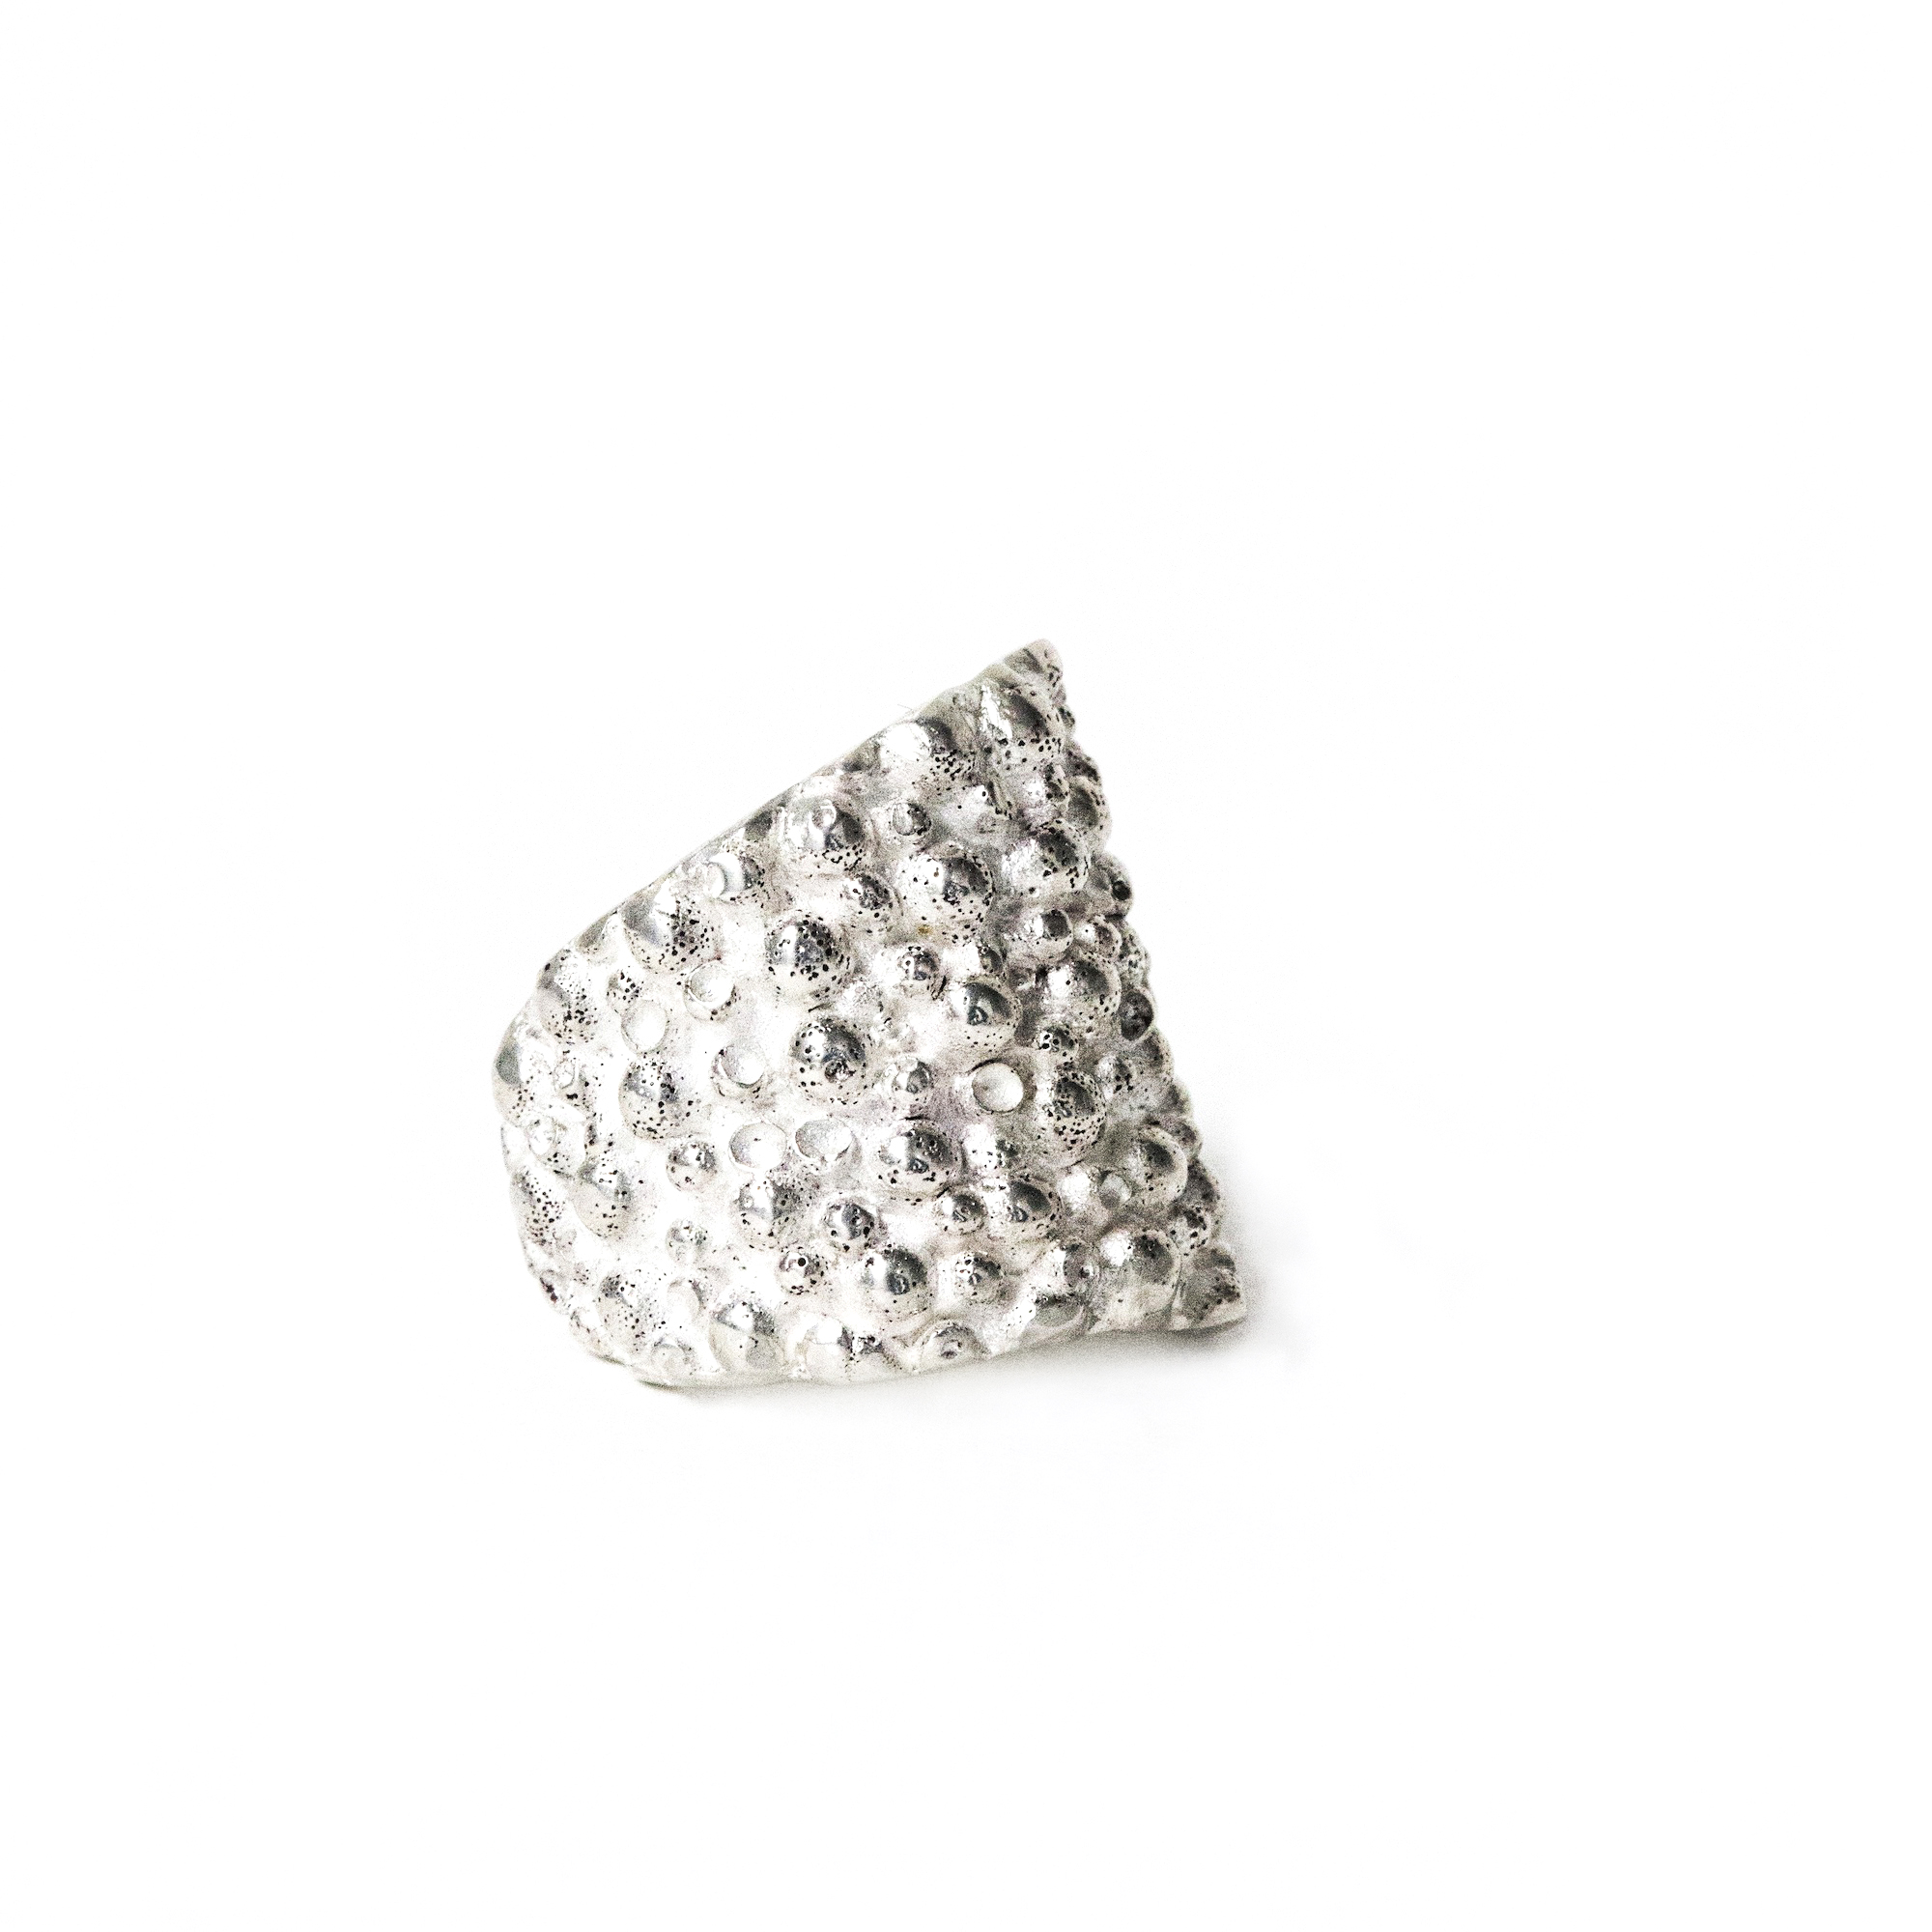 dovile b. nautilus stingray shield ring